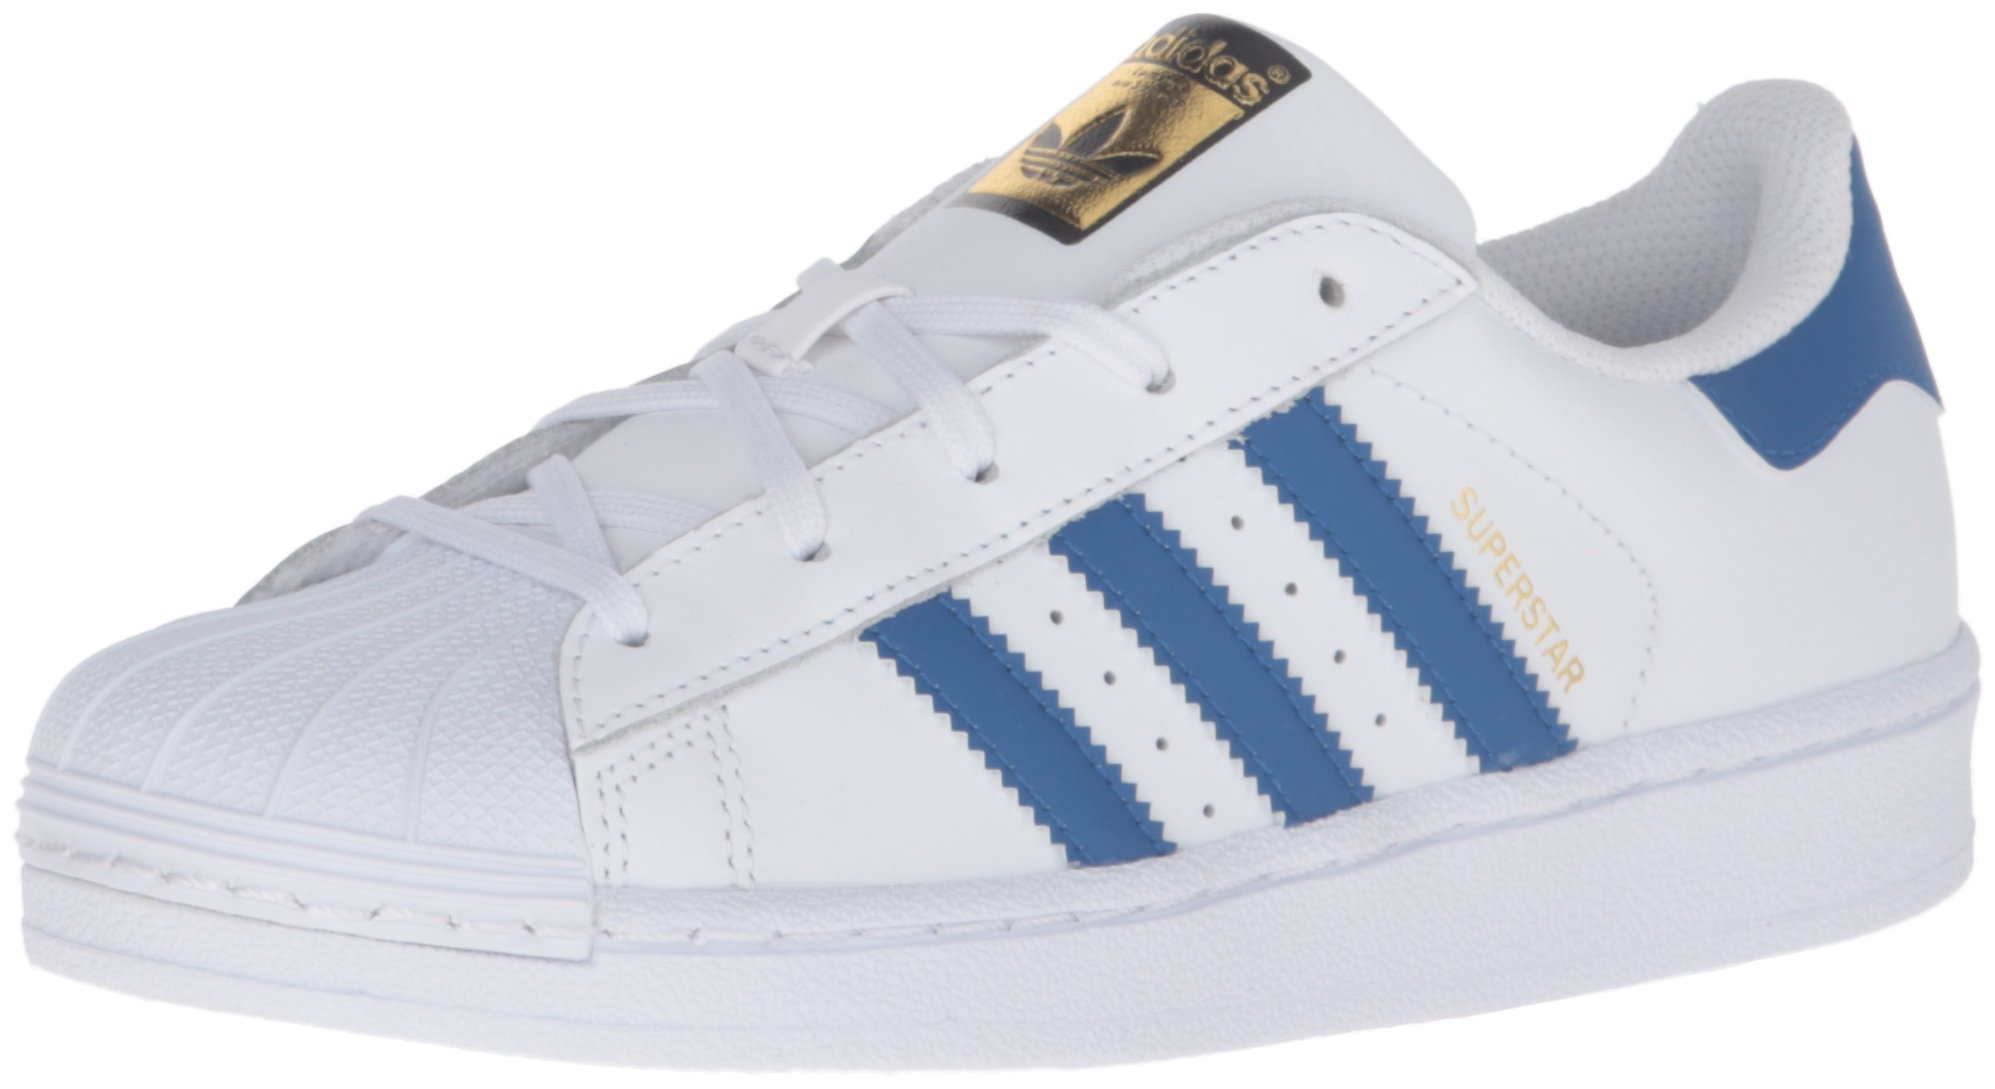 adidas Originals Boys' Superstar Foundation EL C Skate Shoe, White/Satellite/White, 11 M US Little Kid